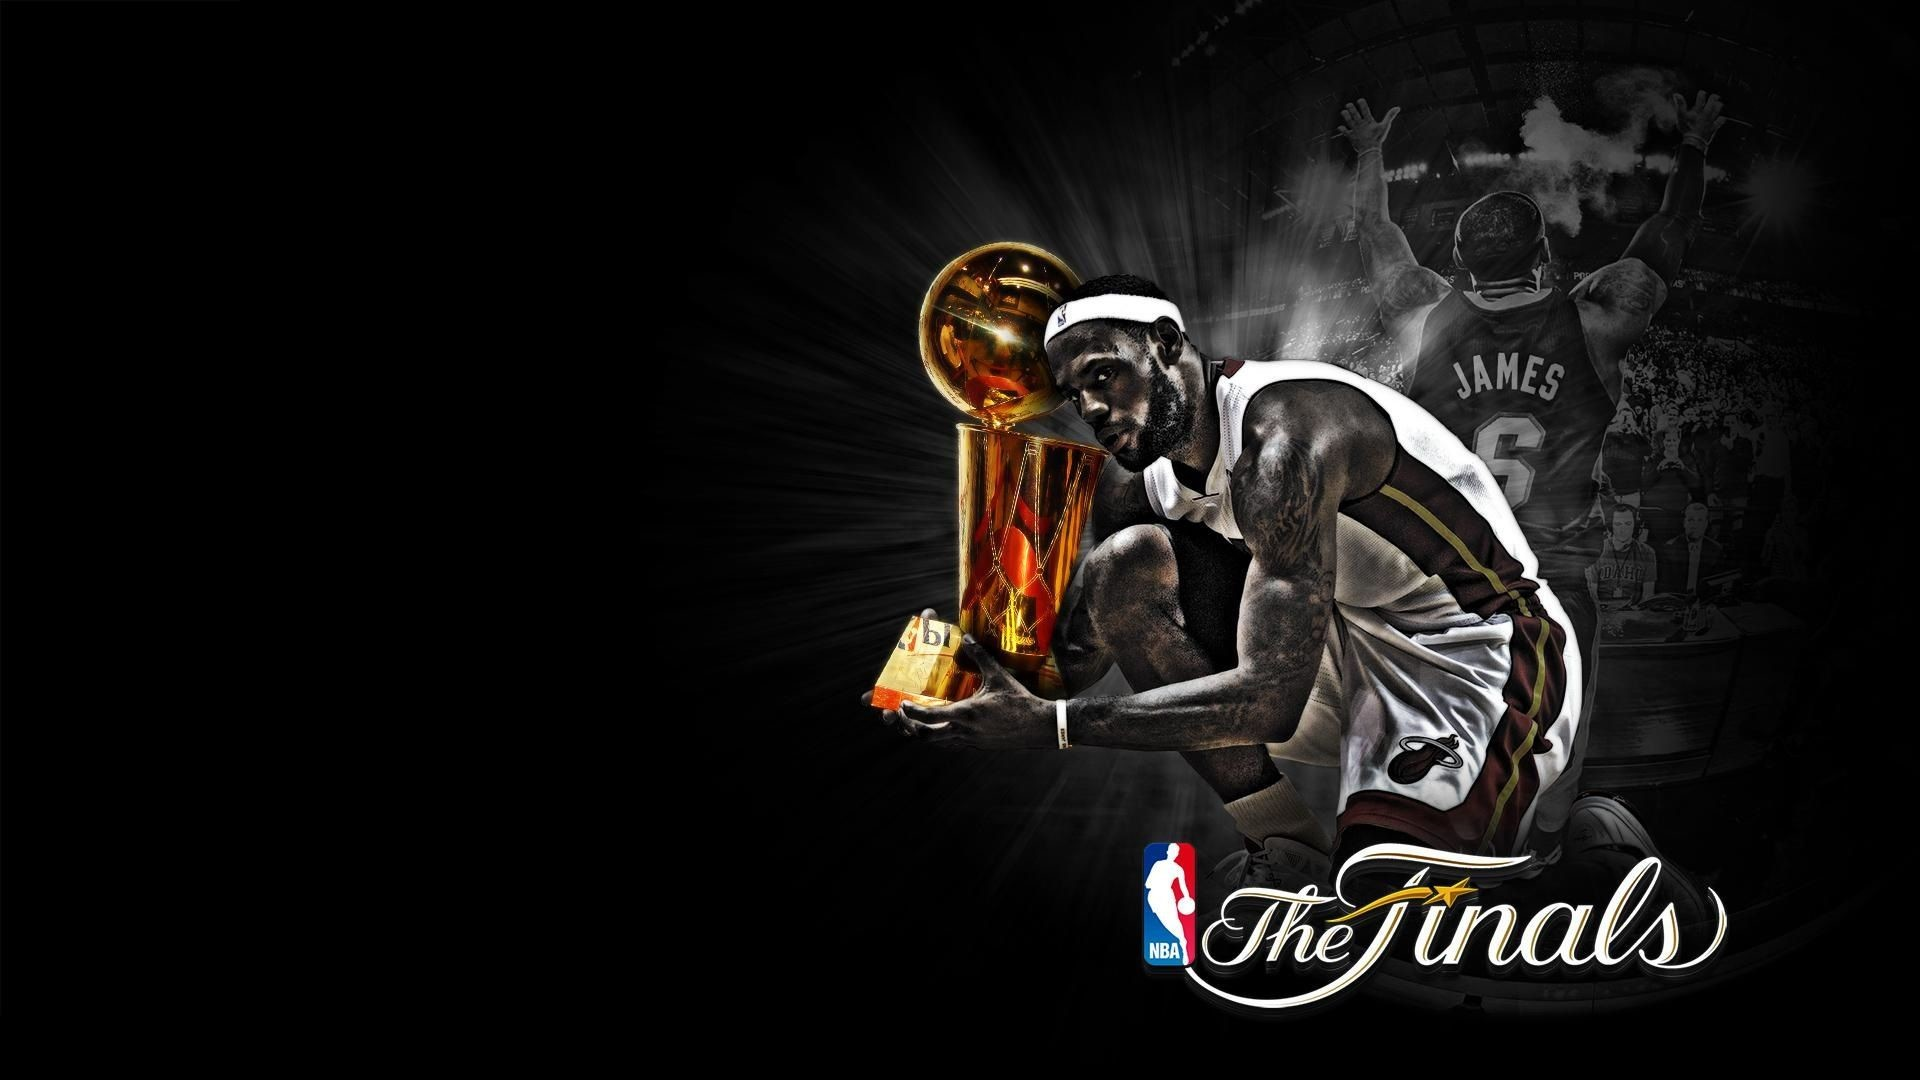 Cool Basketball Wallpaper 71 images